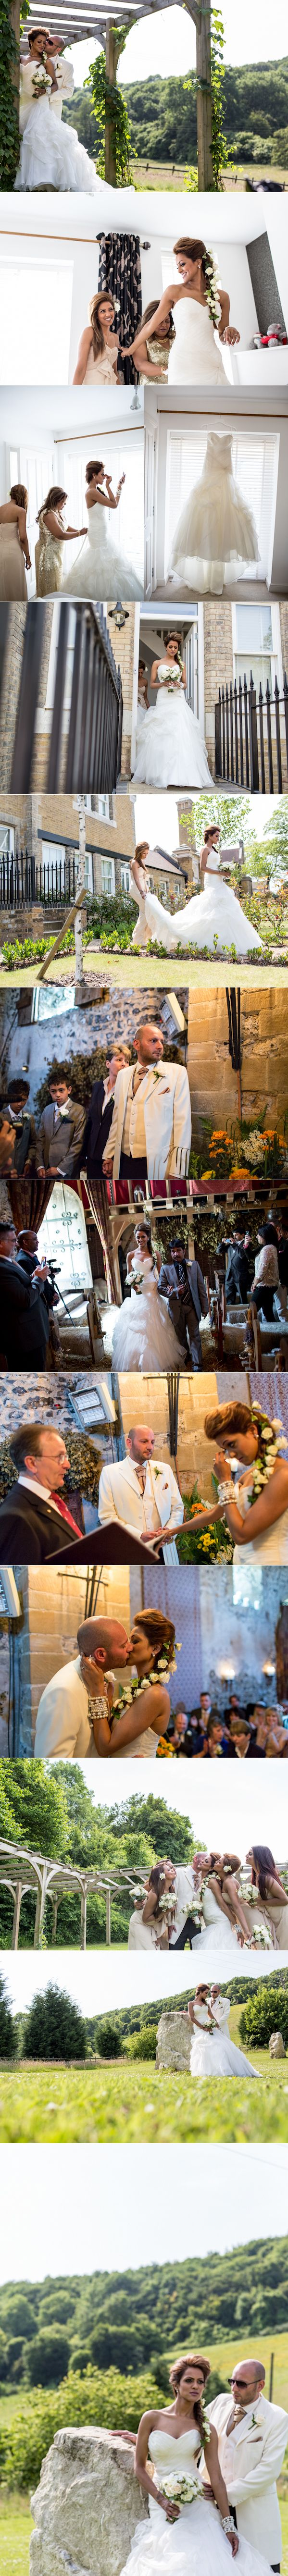 Countryside Kent Village Indian & English Fused Civil Ceremony by AIYA Photography